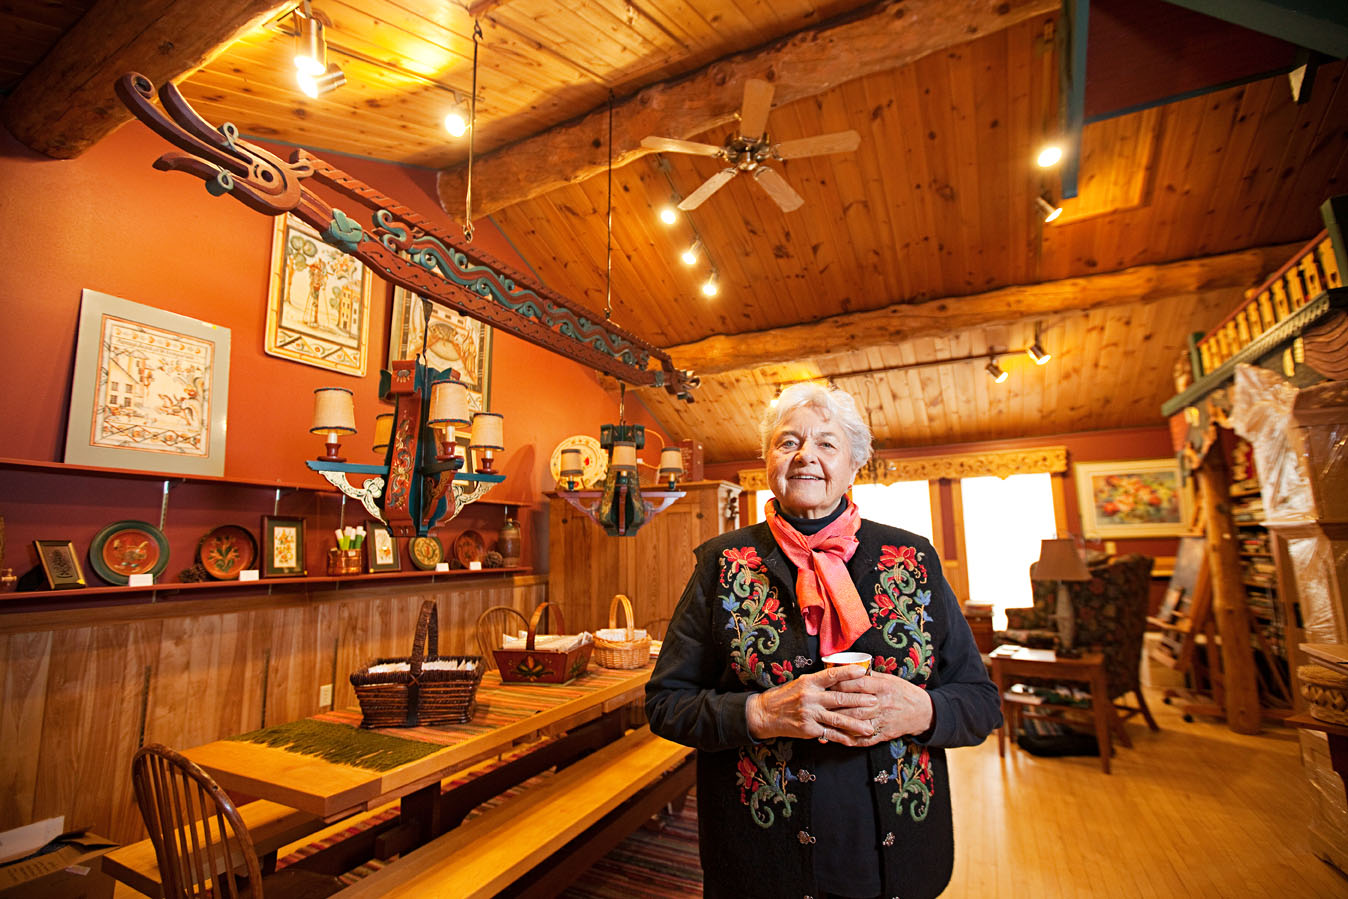 Karen Jenson, owner of Trestuen Garden Gallery and Studio.